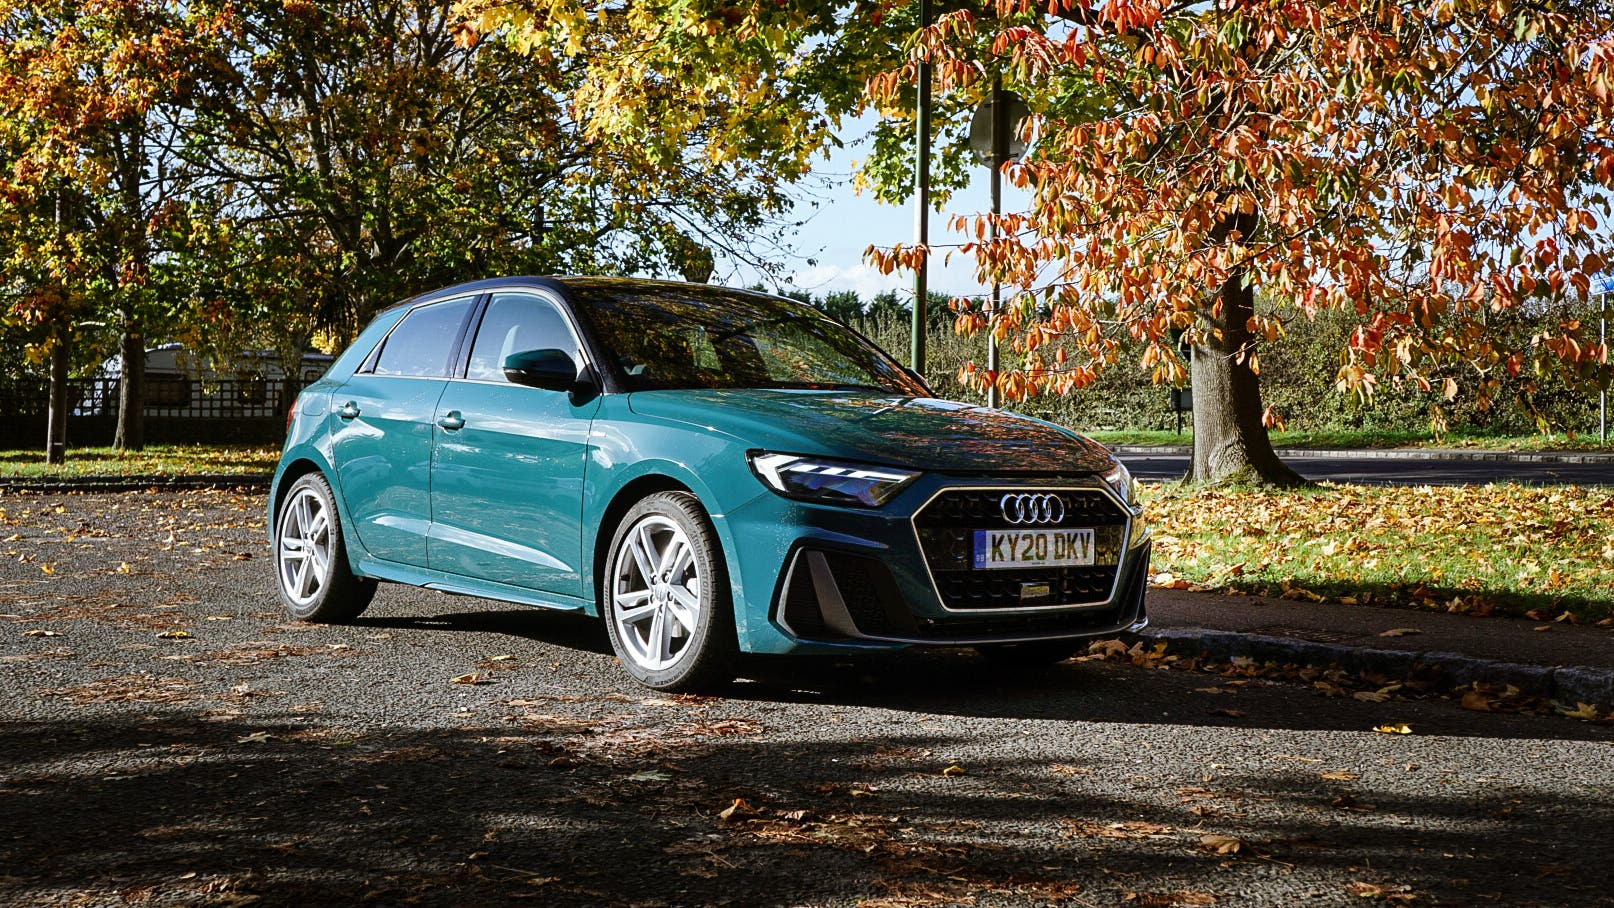 Long-term report: Long-distance trips prove little trouble for the Audi A1